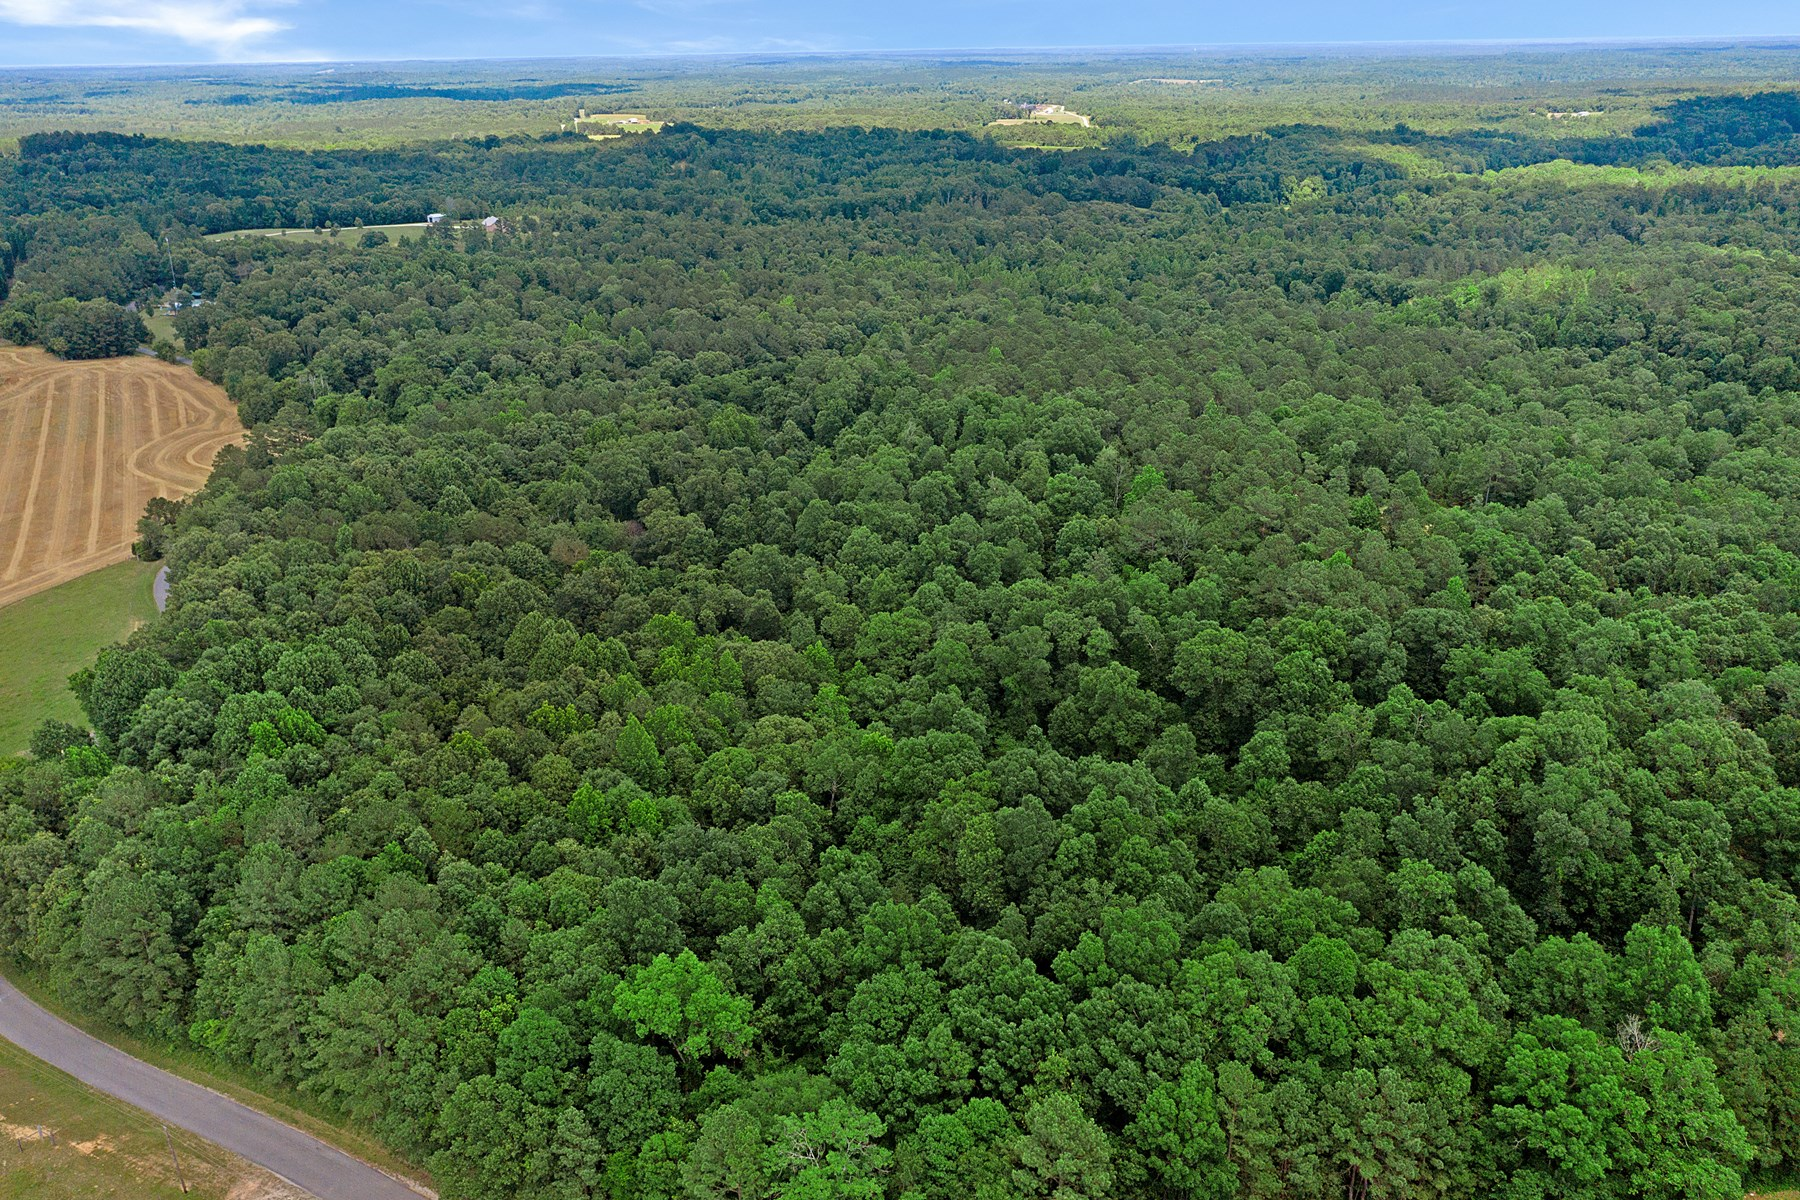 Recreational Hunting Property / Forestry Land For Sale - TN